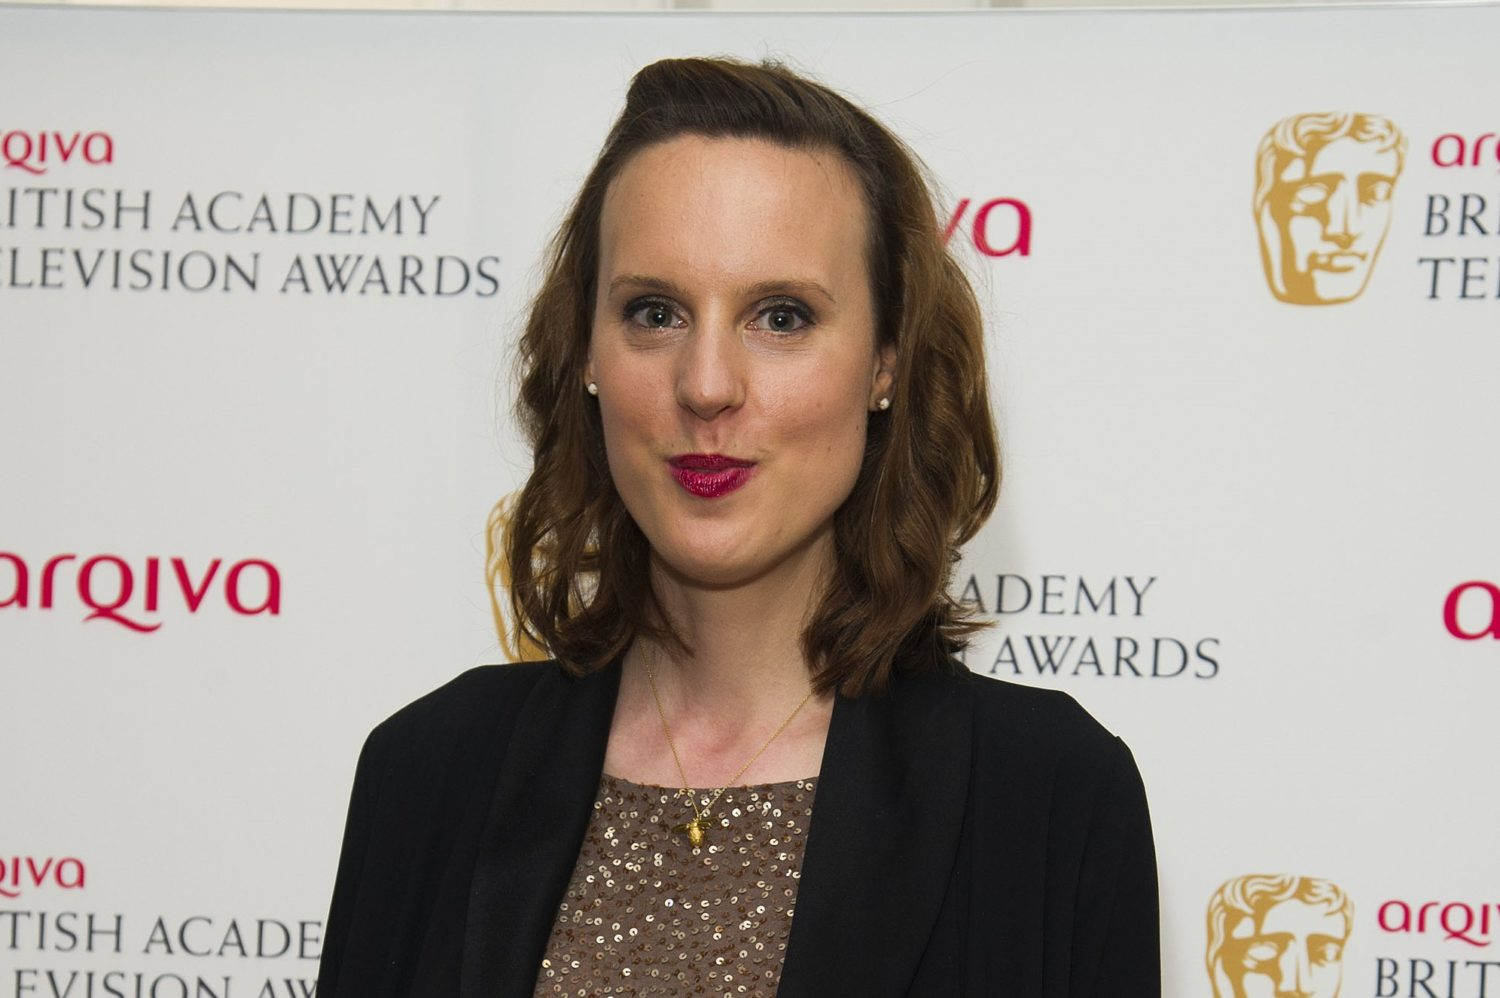 Great British Bake Off winner Frances Quinn 'banned from Waitrose after being accused of shoplifting'